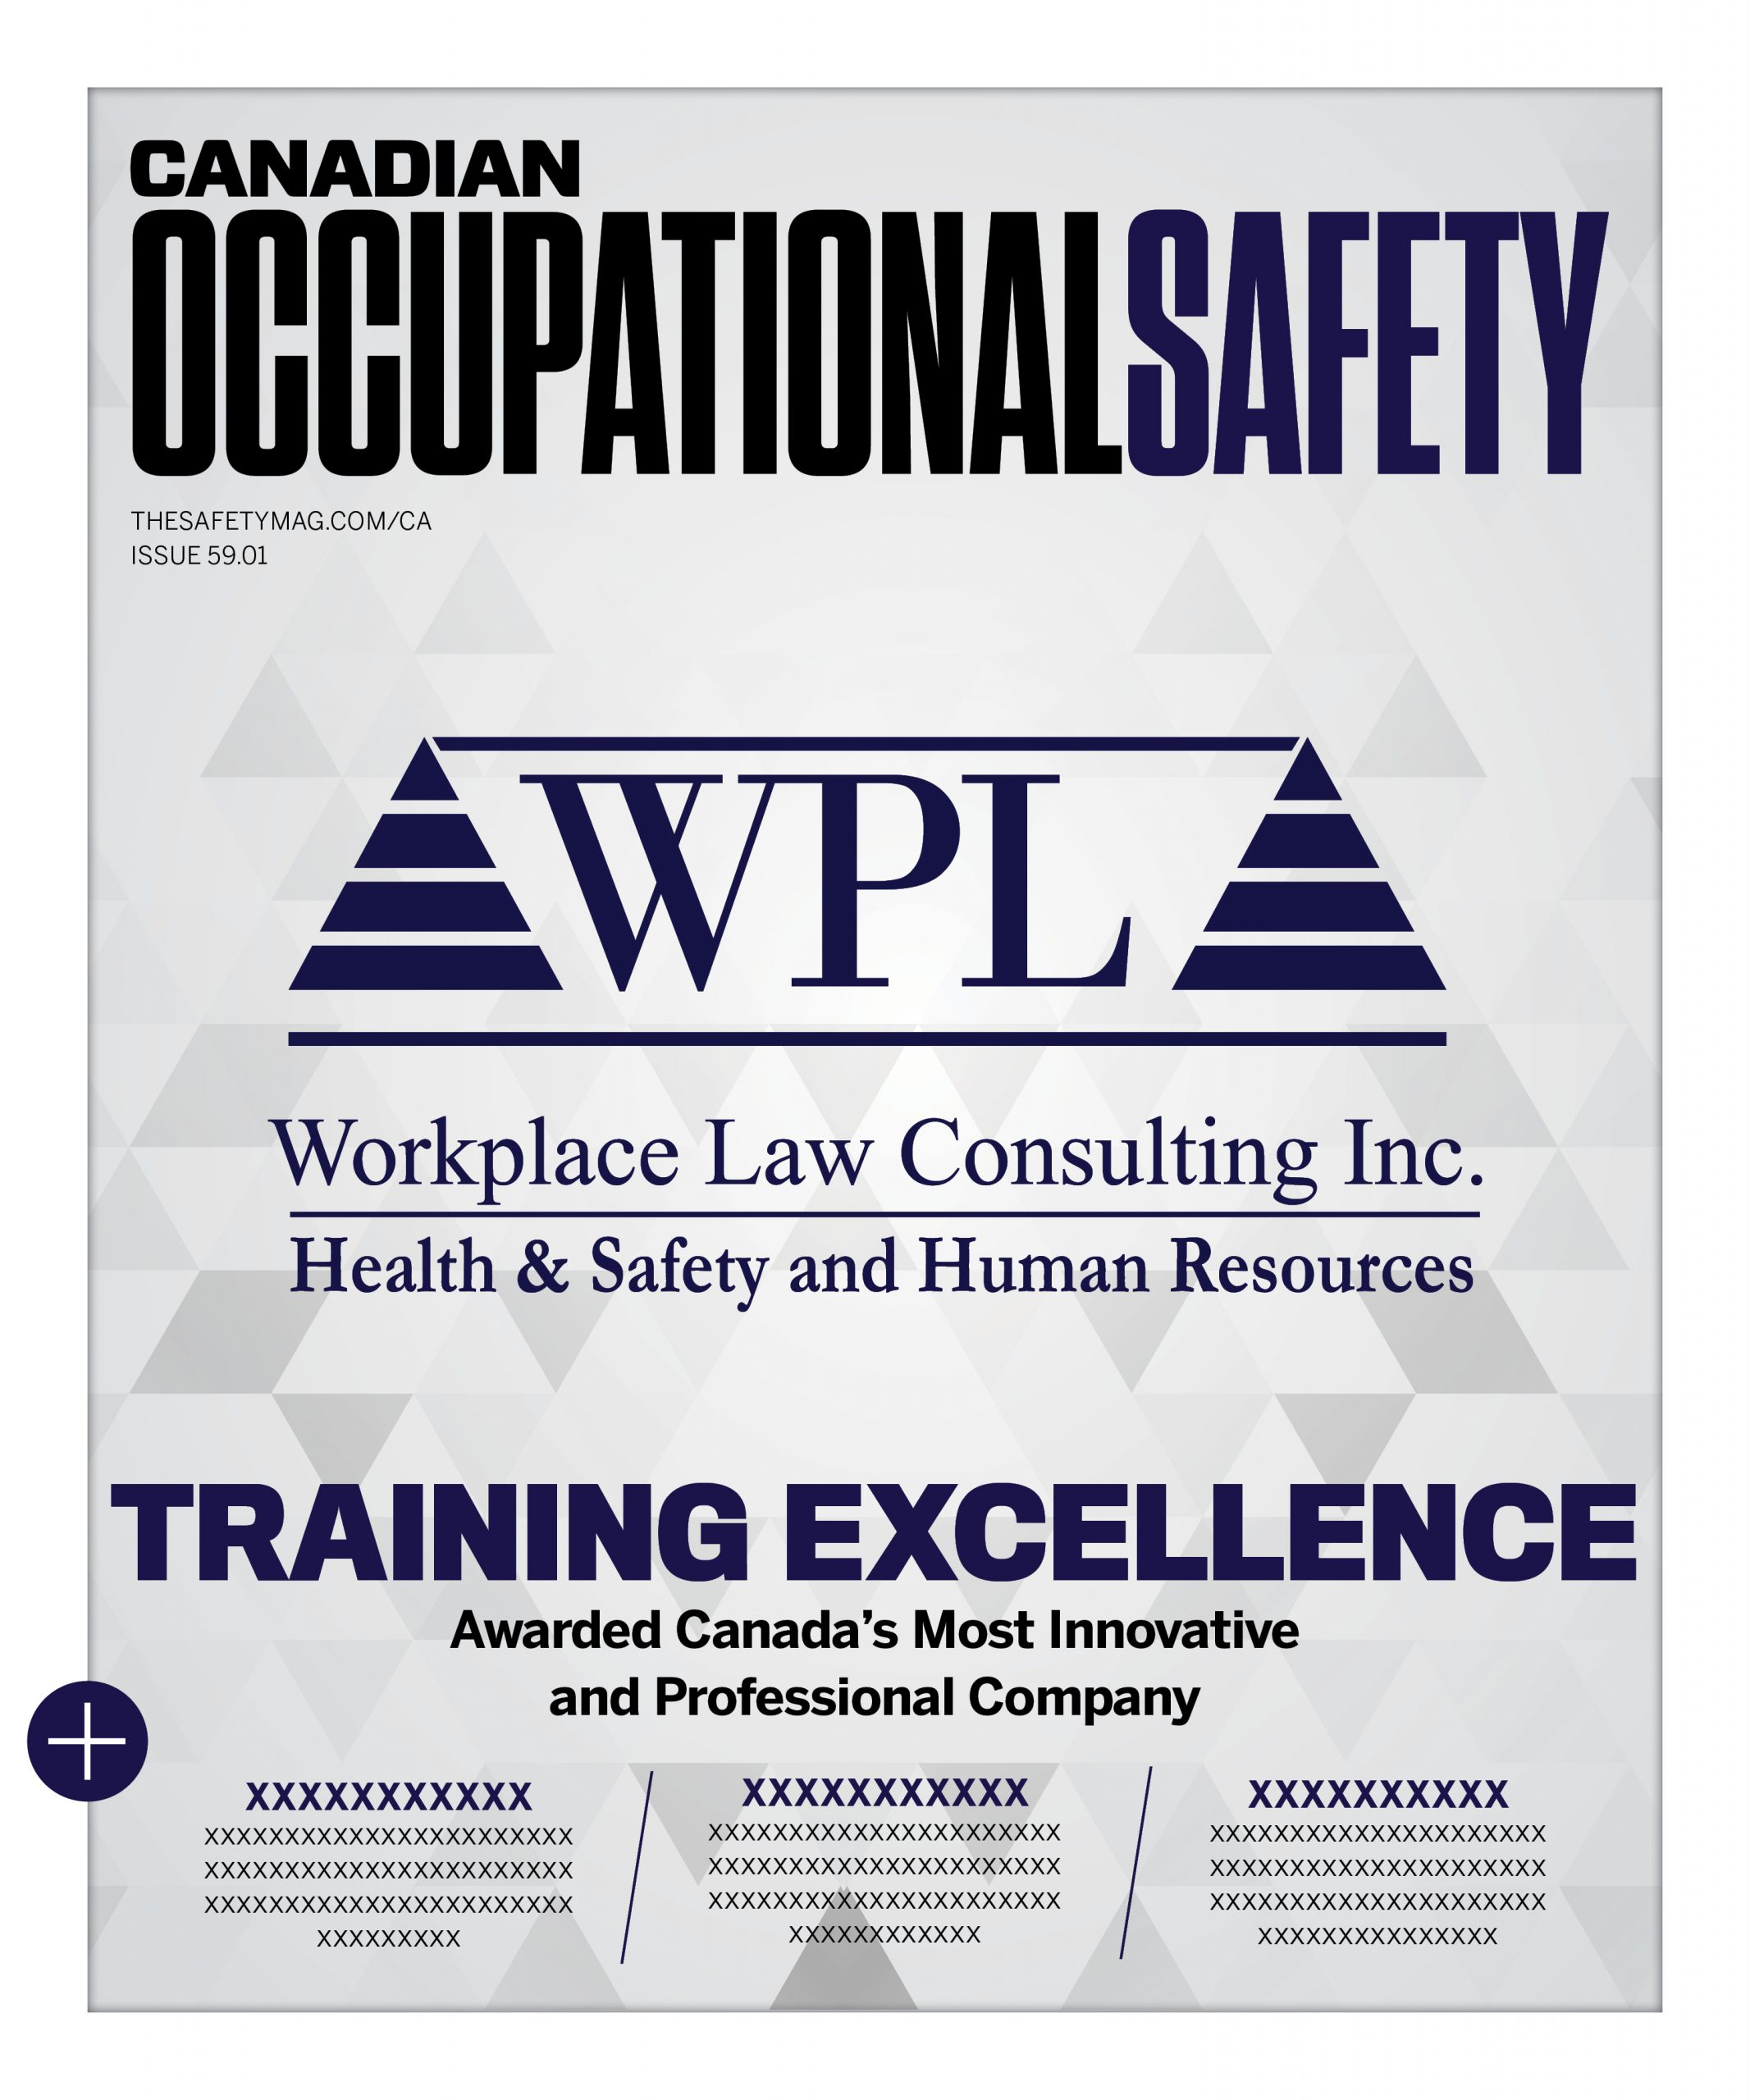 Workplace Law Consulting Receives the COS 5 Star Safety Training Award